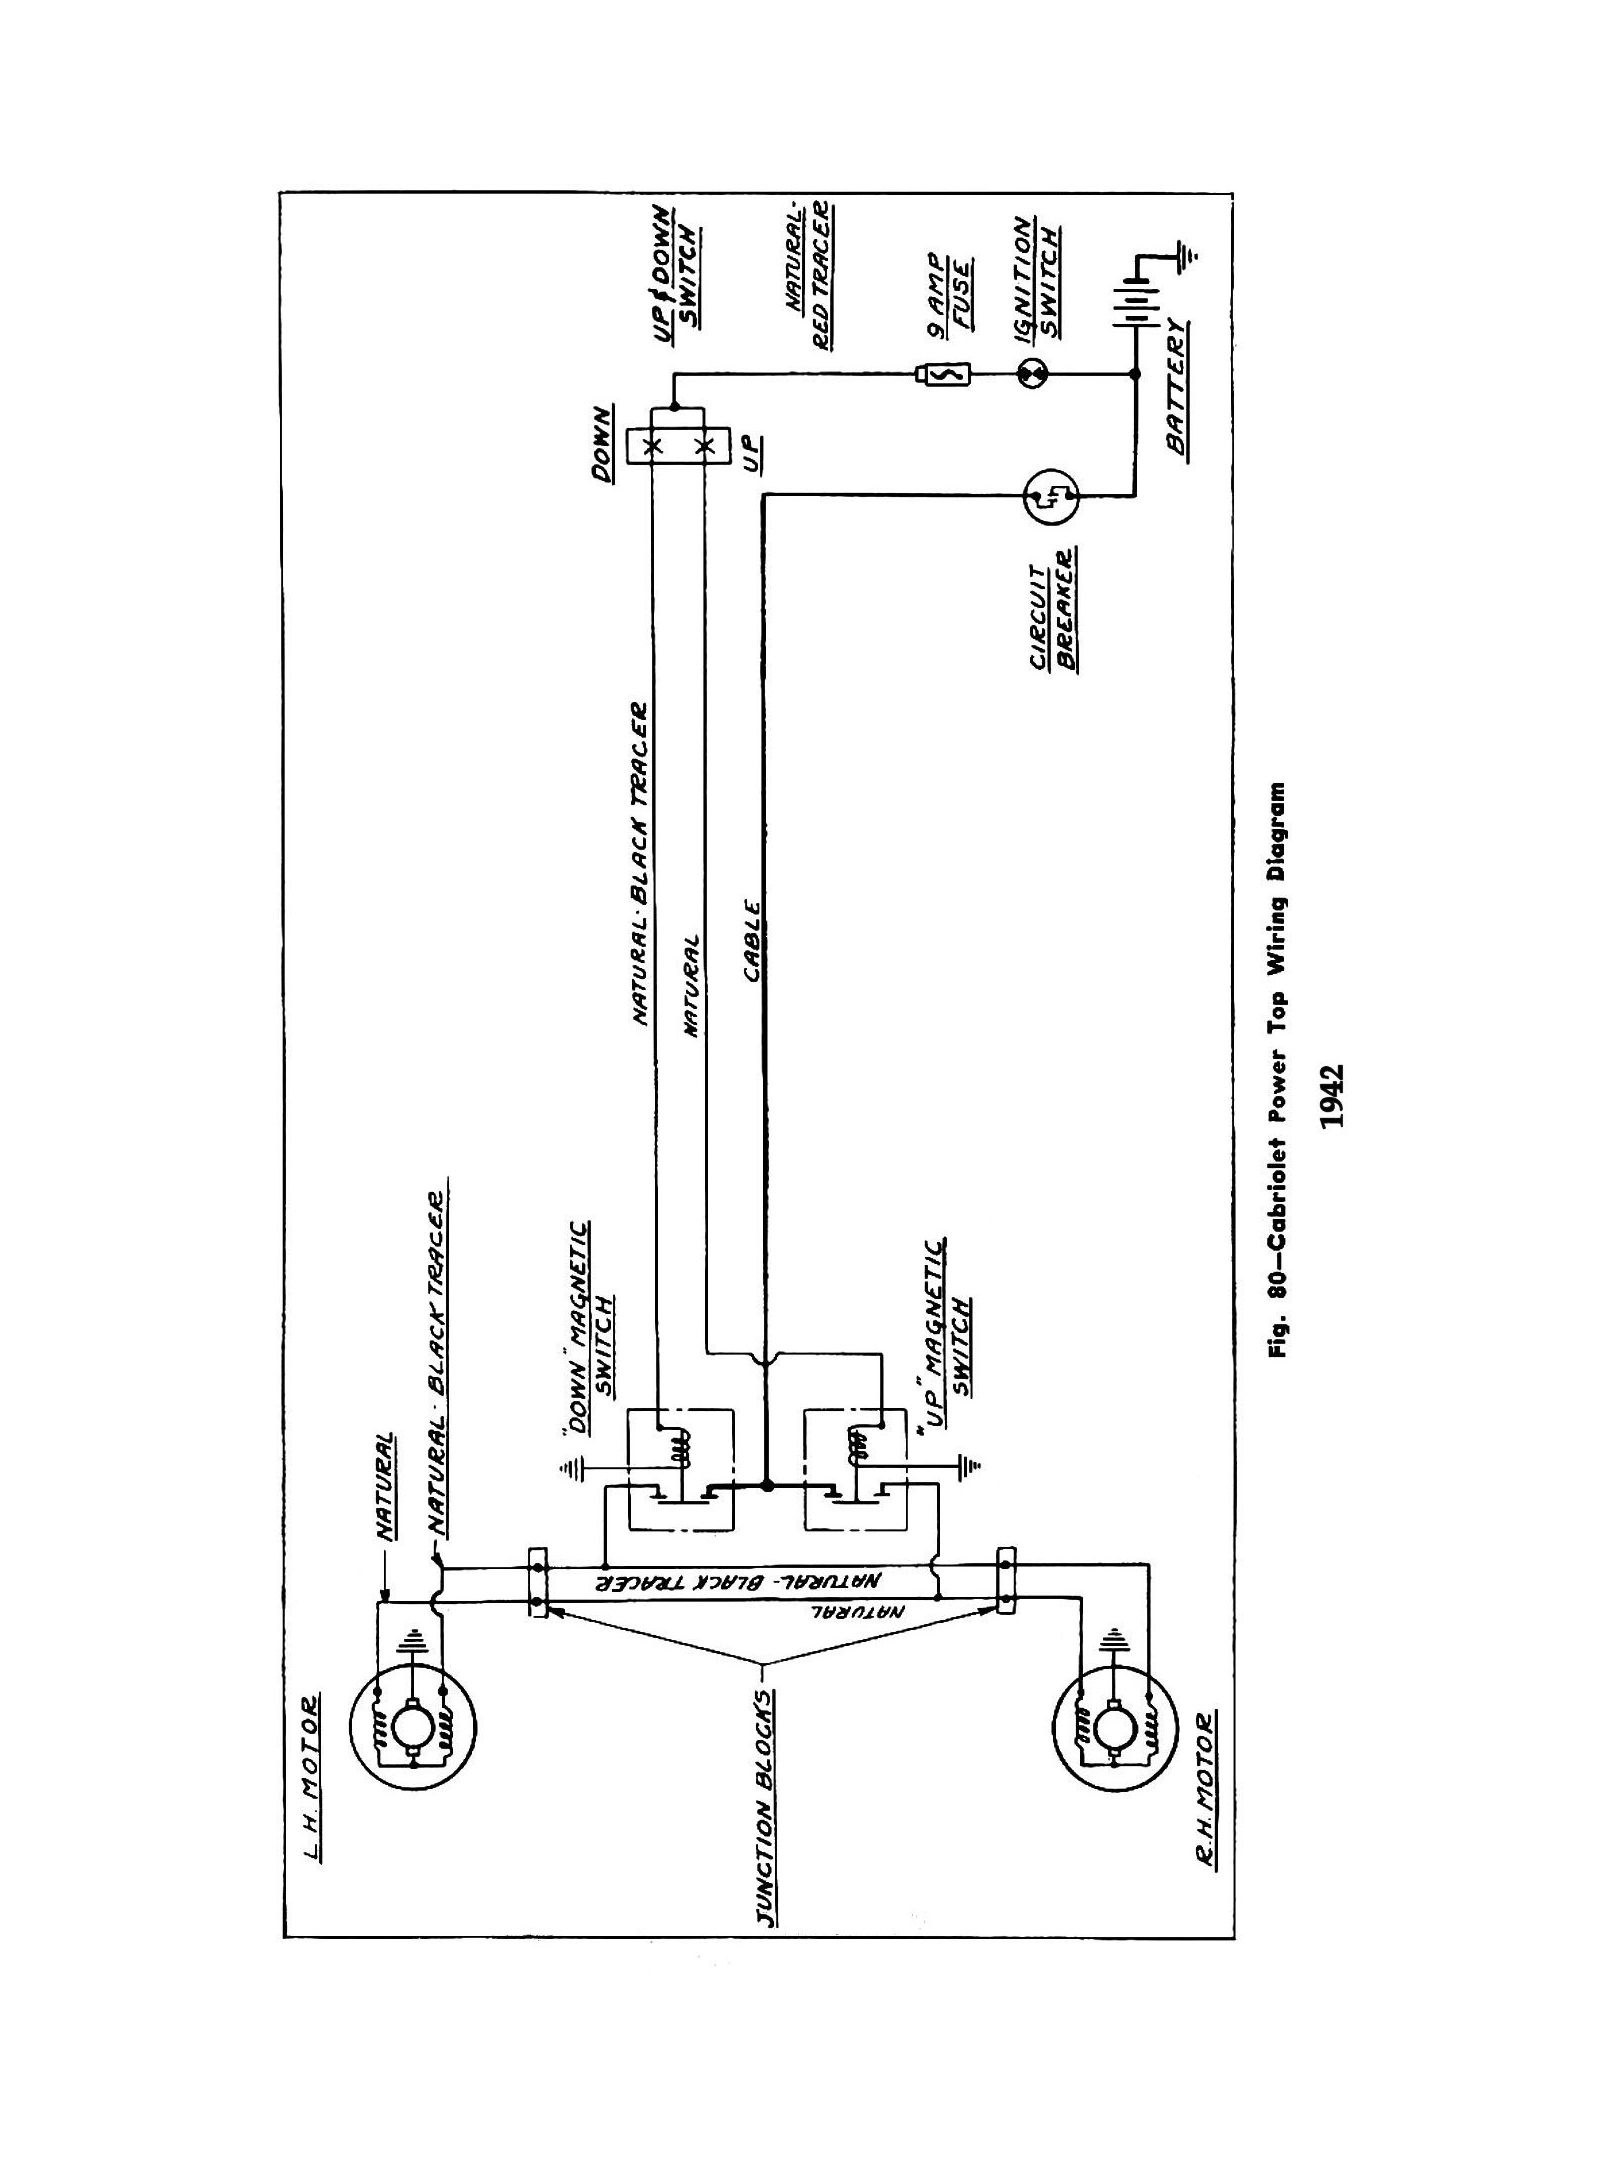 Home With Multiple Light Wiring Diagram Light Switch